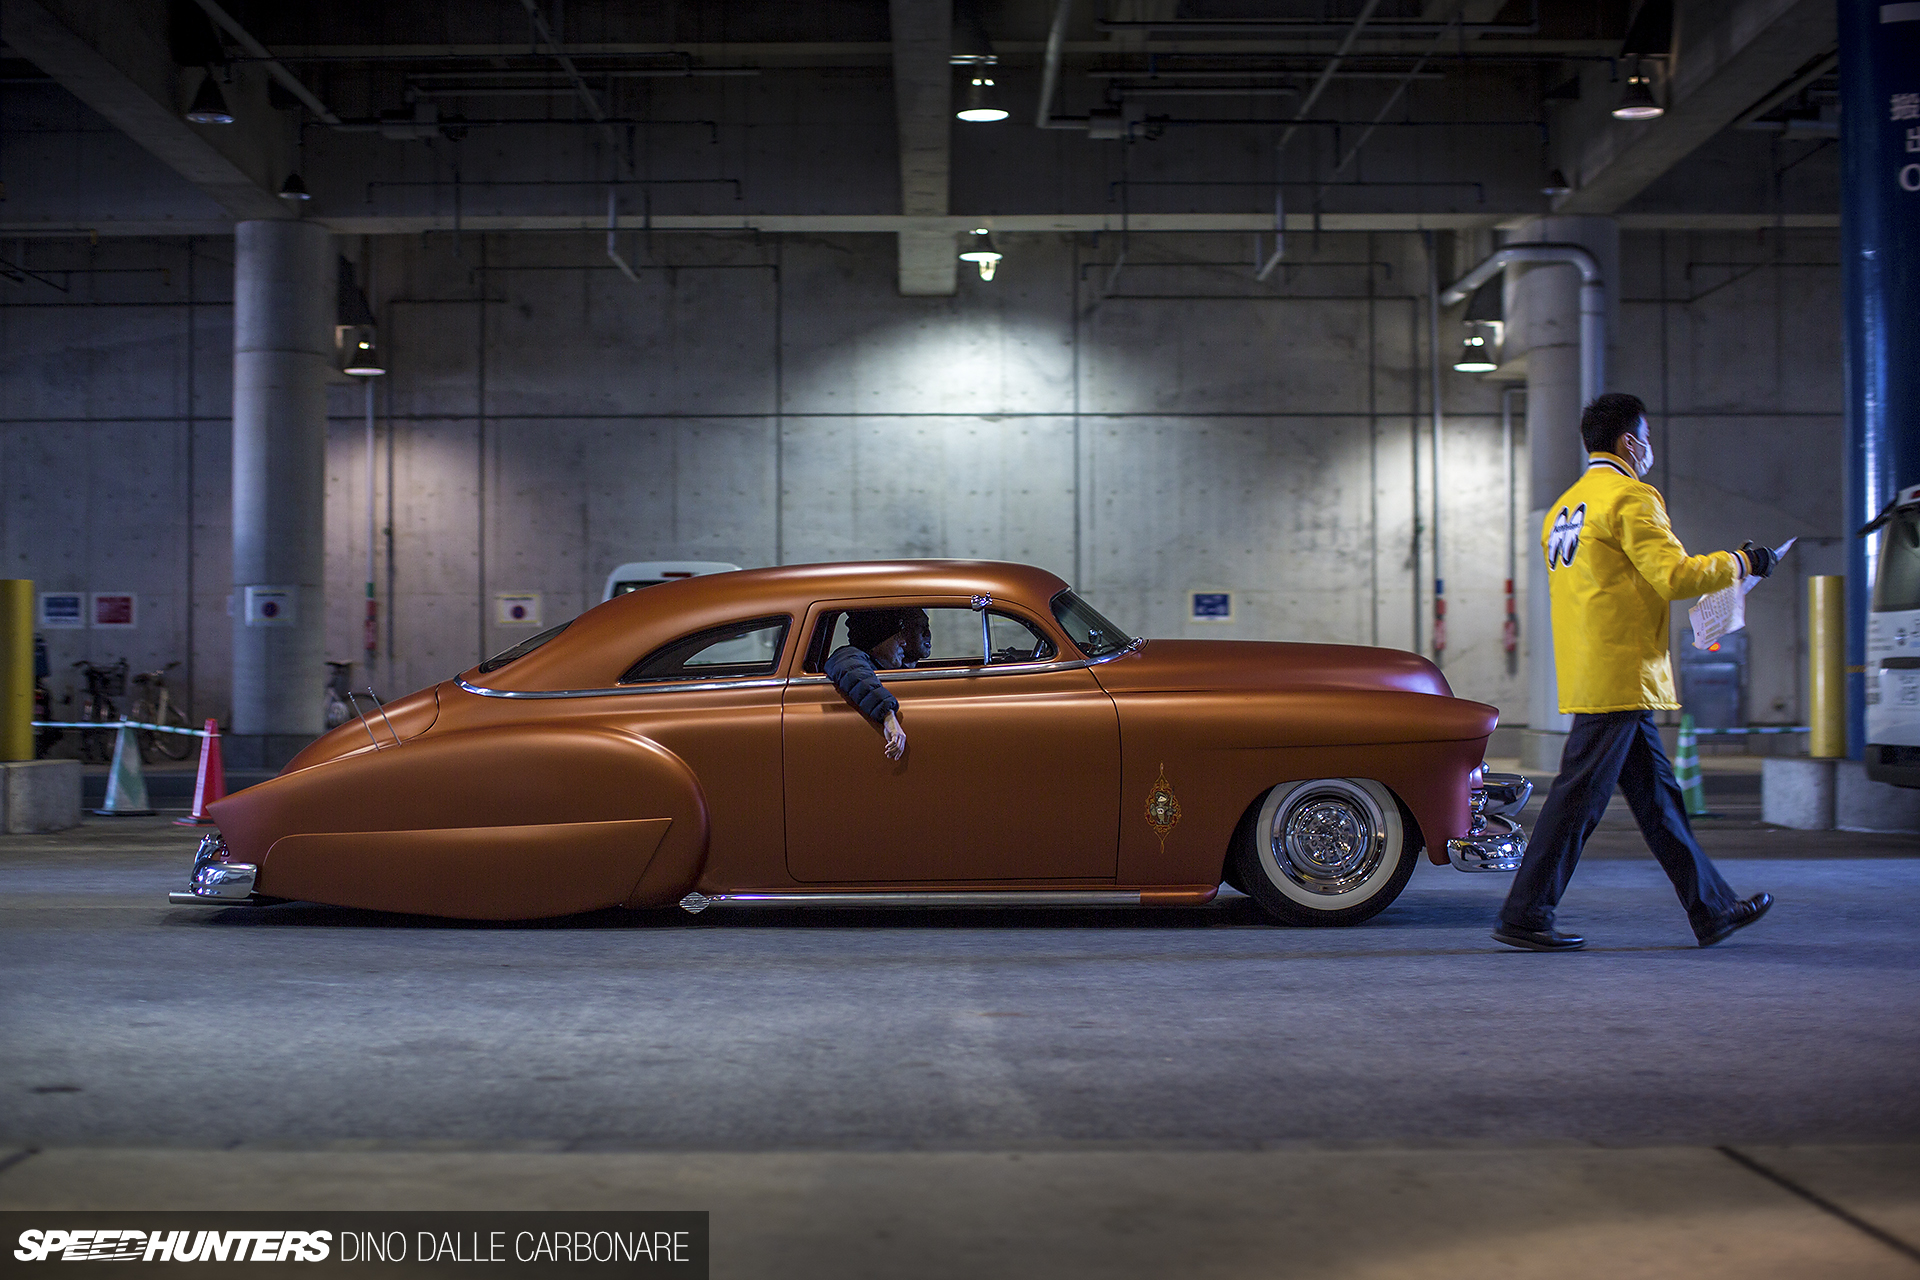 Sleeper Car Wallpaper This Is Japanese Hot Rodding Speedhunters